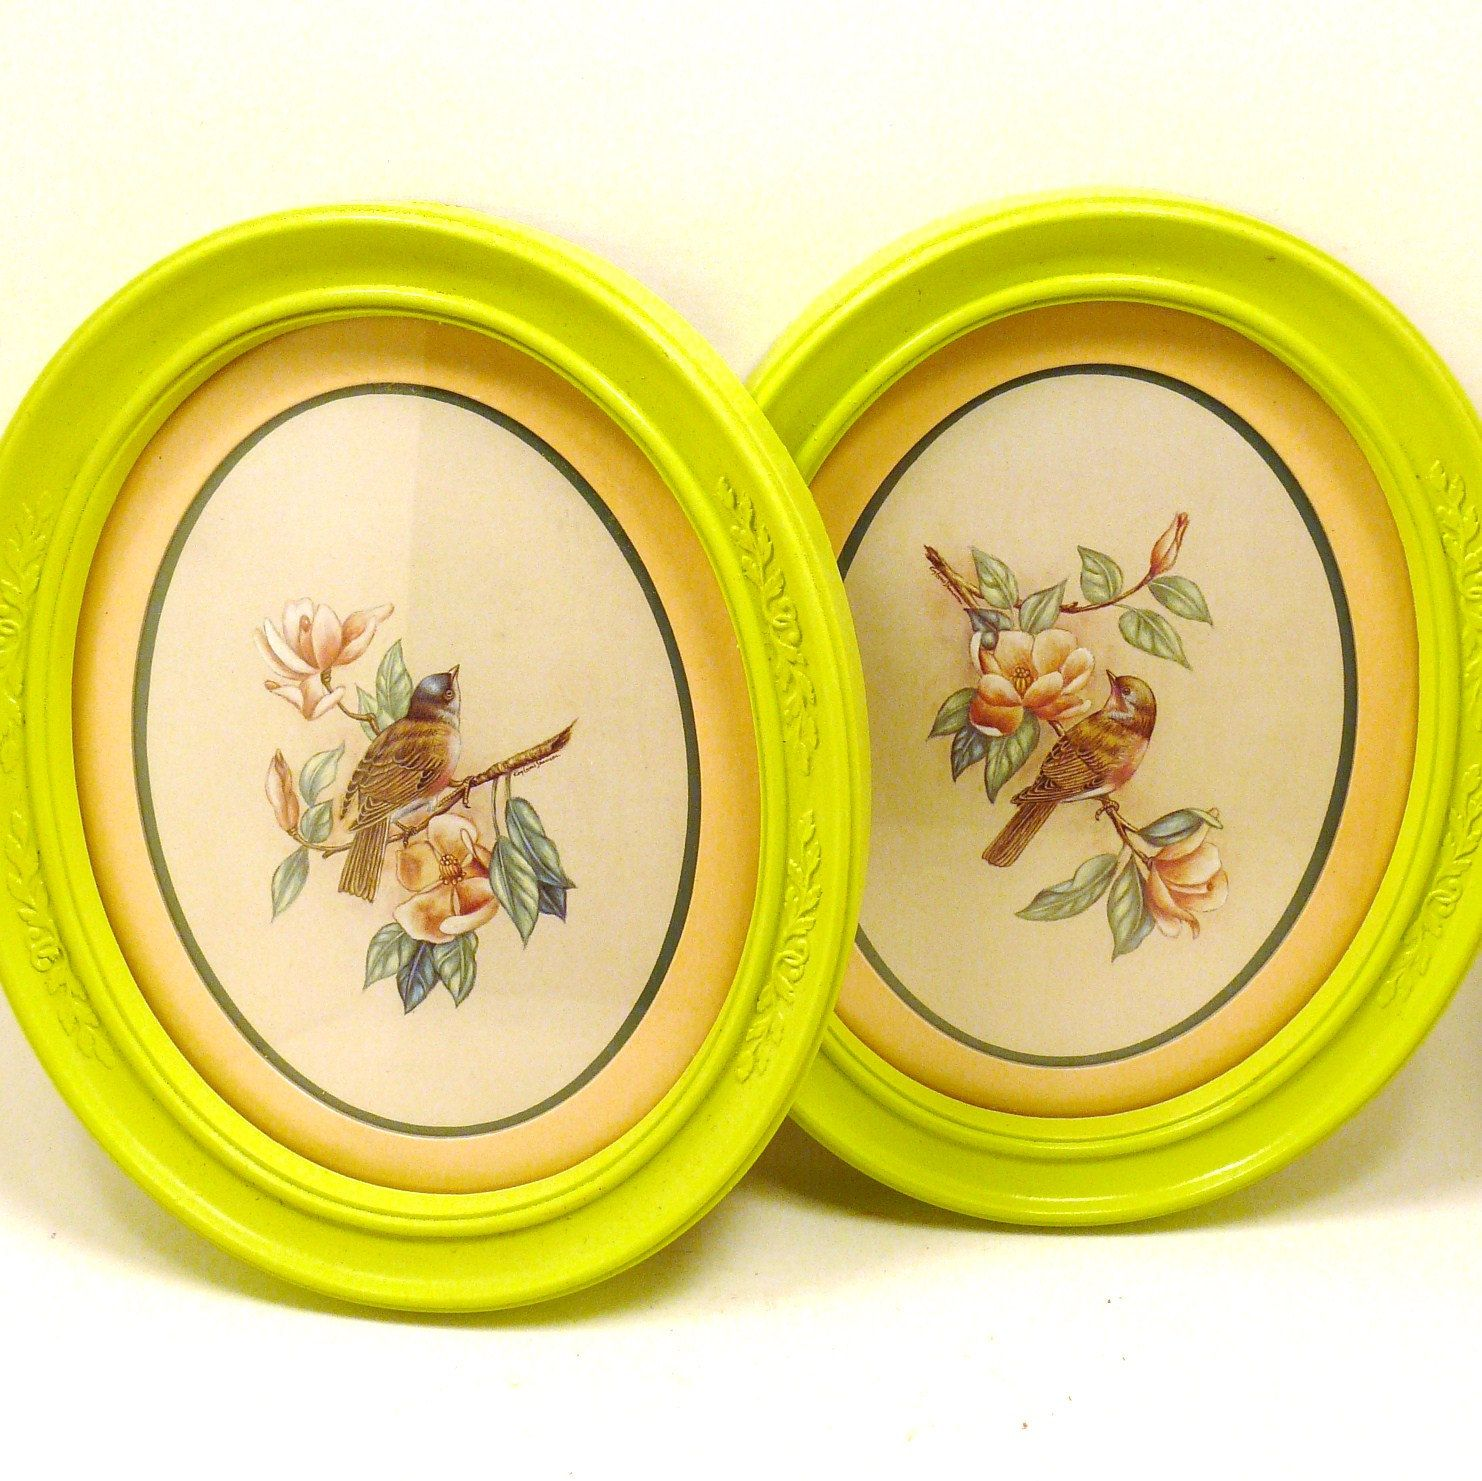 upcycled picture frames with bird prints | Design | Pinterest | Bird ...